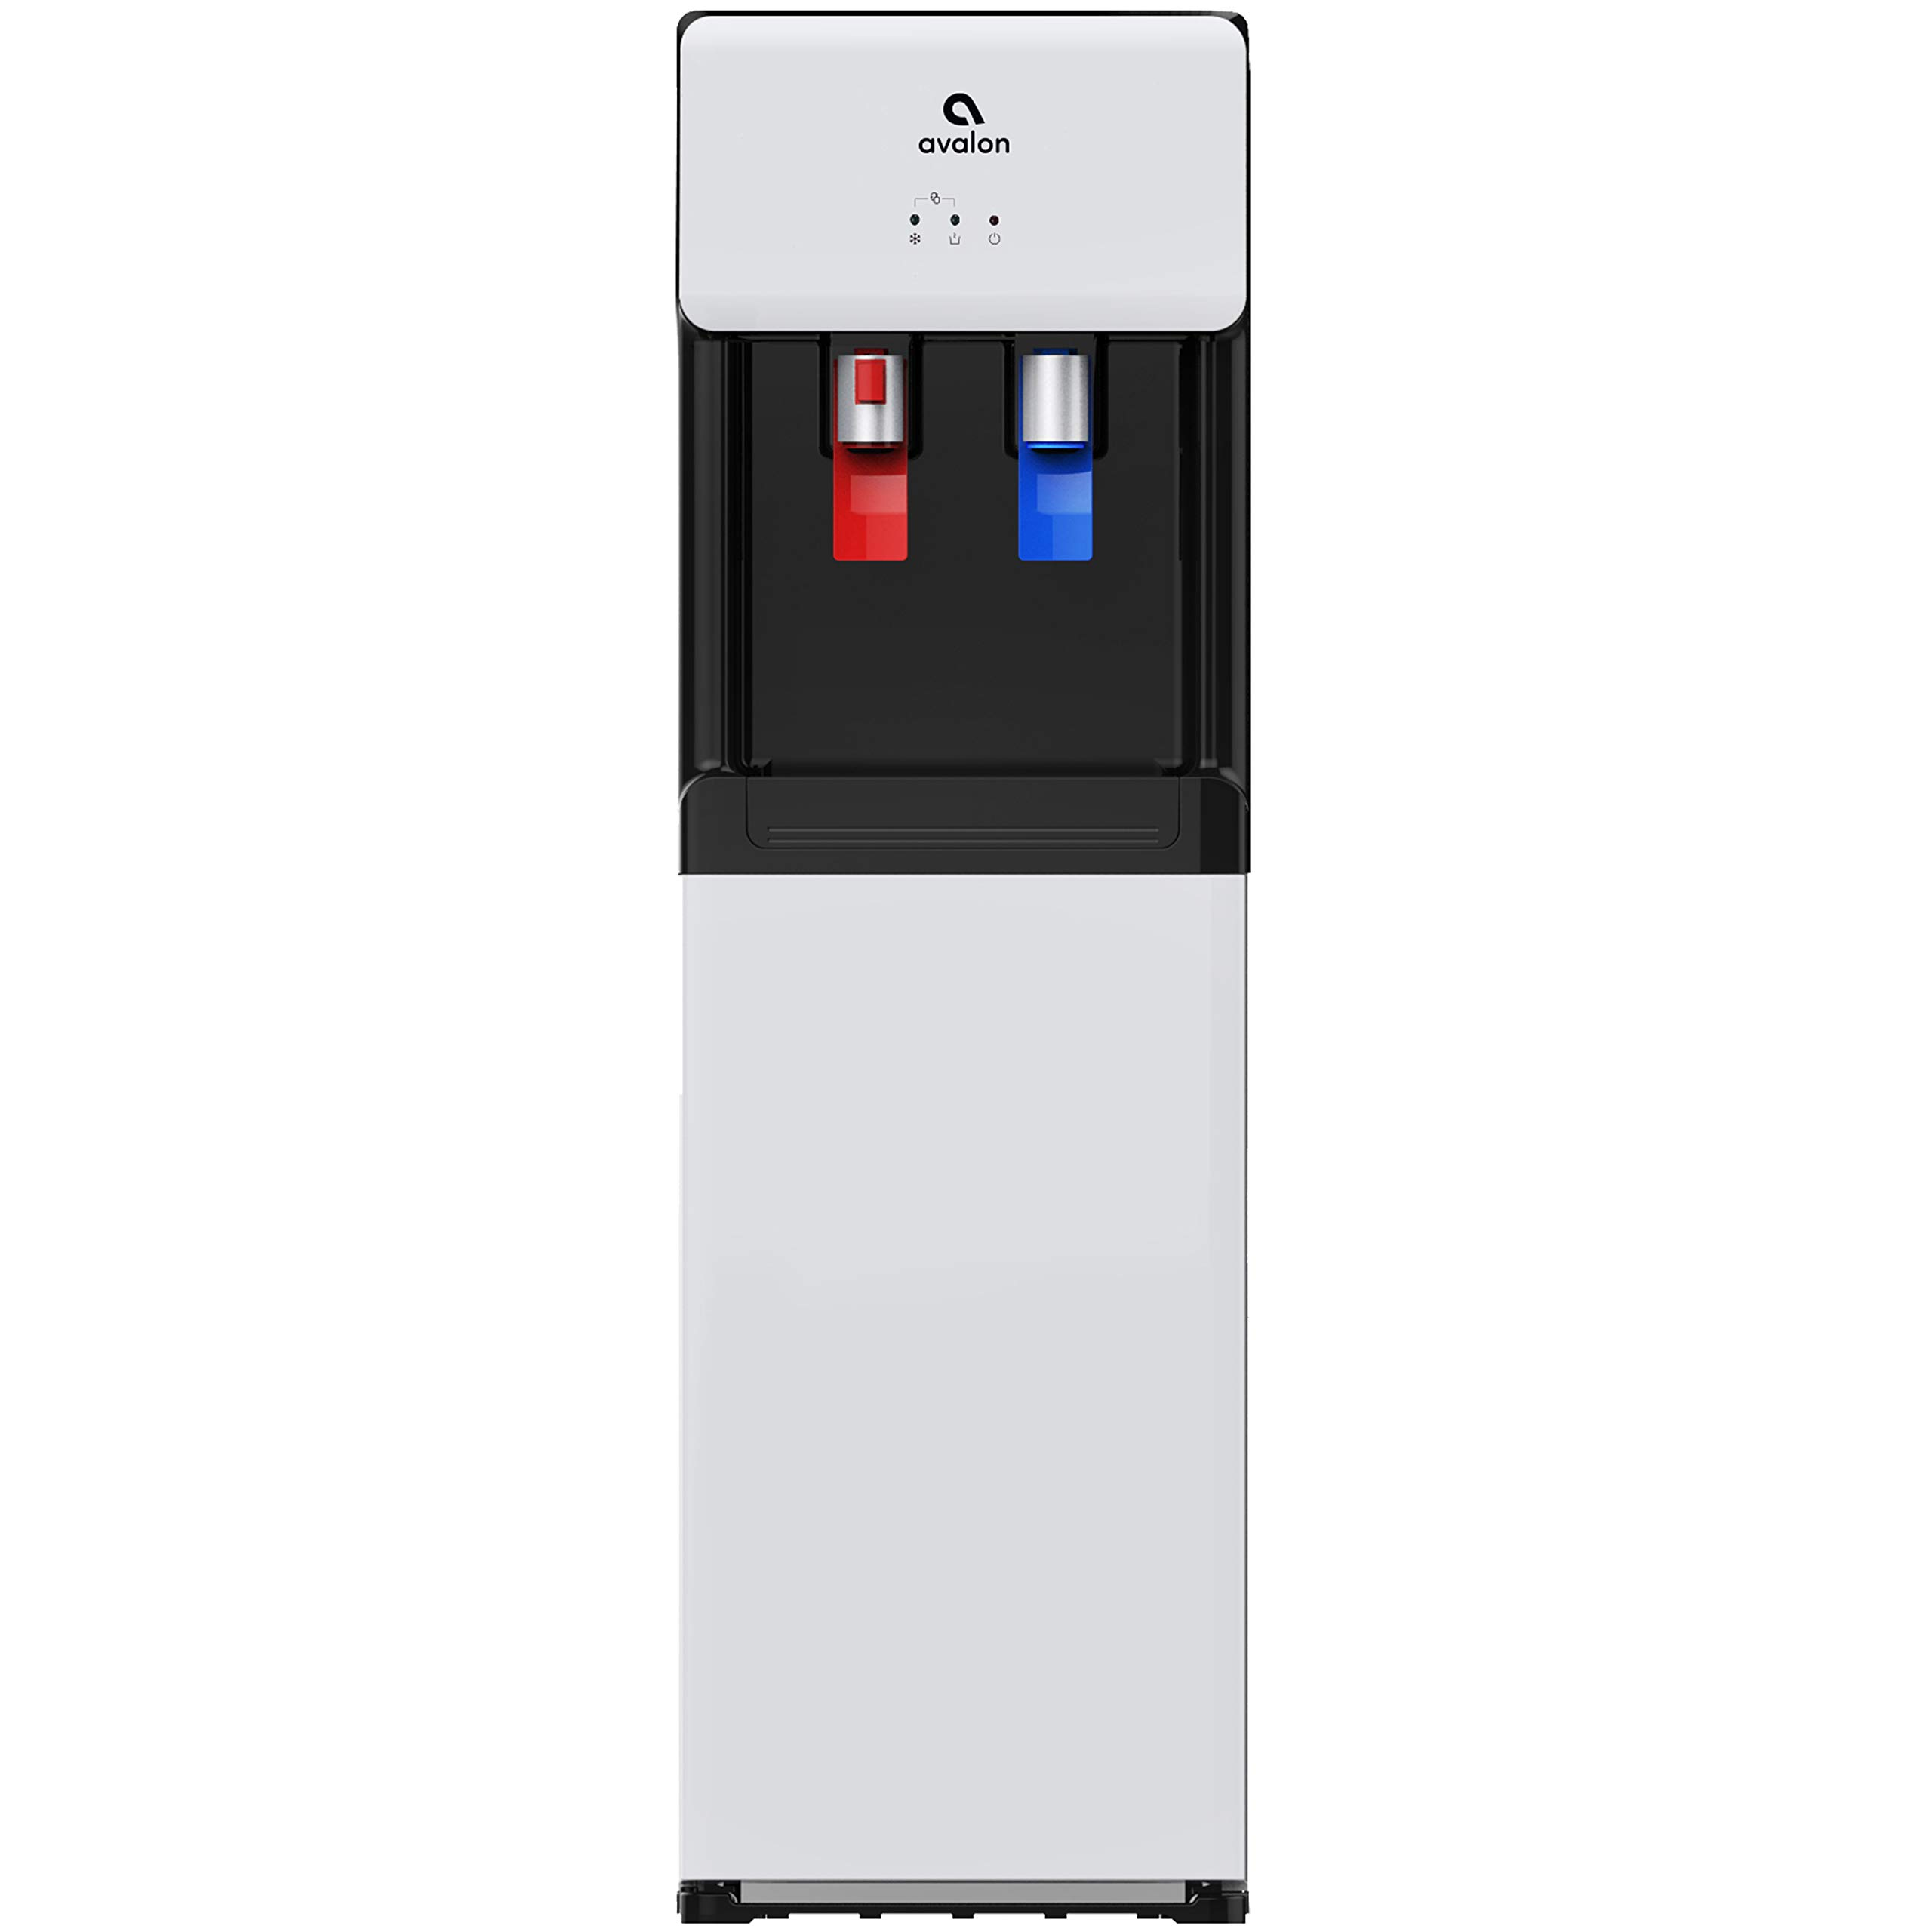 Avalon A6 Bottom Loading Water Cooler Dispenser - Hot & Cold Water, Child Safety Lock, Innovative Slim Design, Holds 3 or 5 Gallon Bottles - UL/Energy Star Approved by Avalon